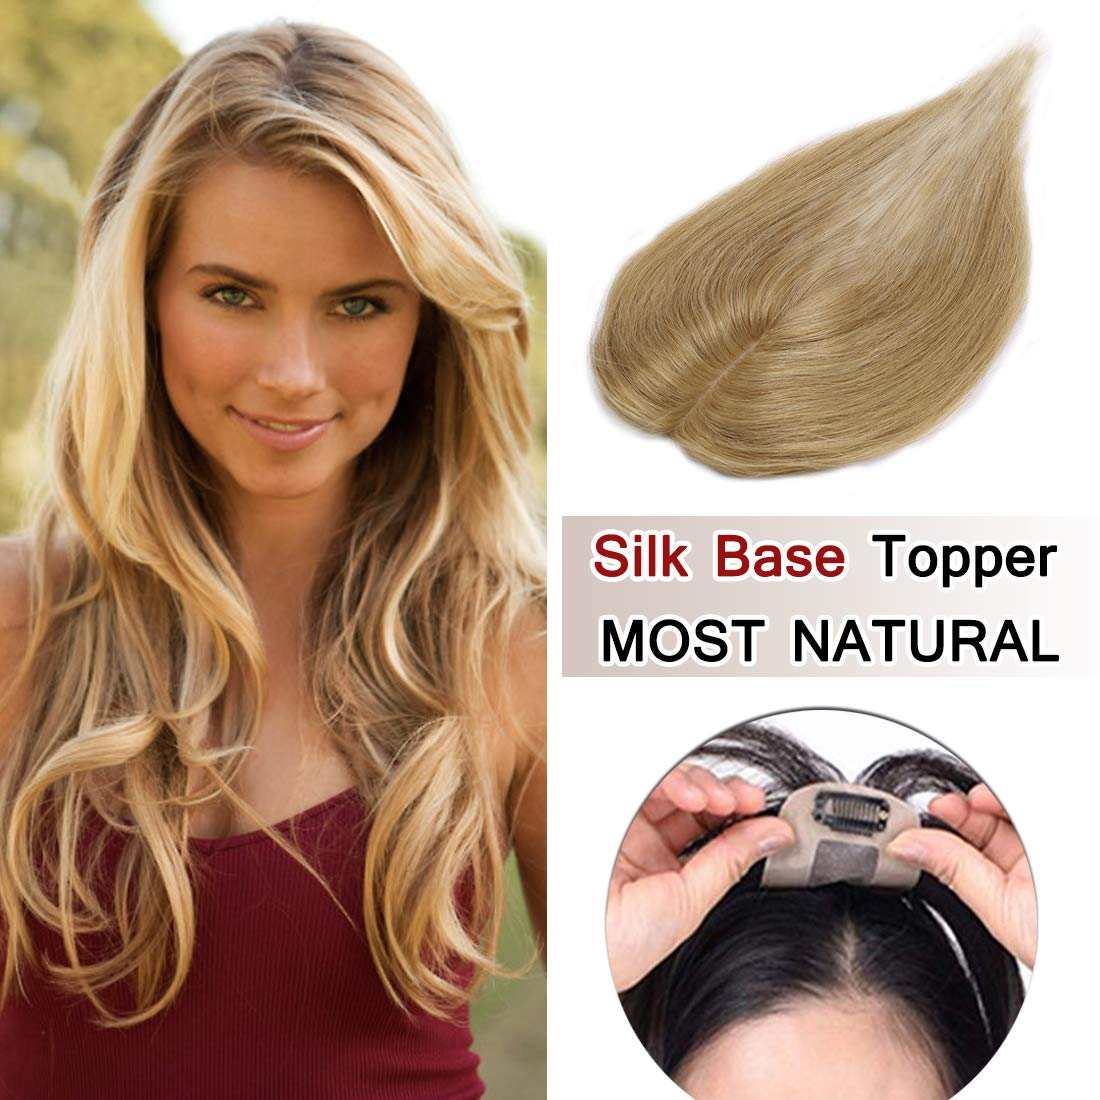 100% Density Top Hair Pieces Silk Base Crown Topper Human Hair Clip in Hair Toppers Top Hairpieces for Women with Thinning Hair Gray Hair/Hair Loss #27 Dark Blonde 14 inches 23g